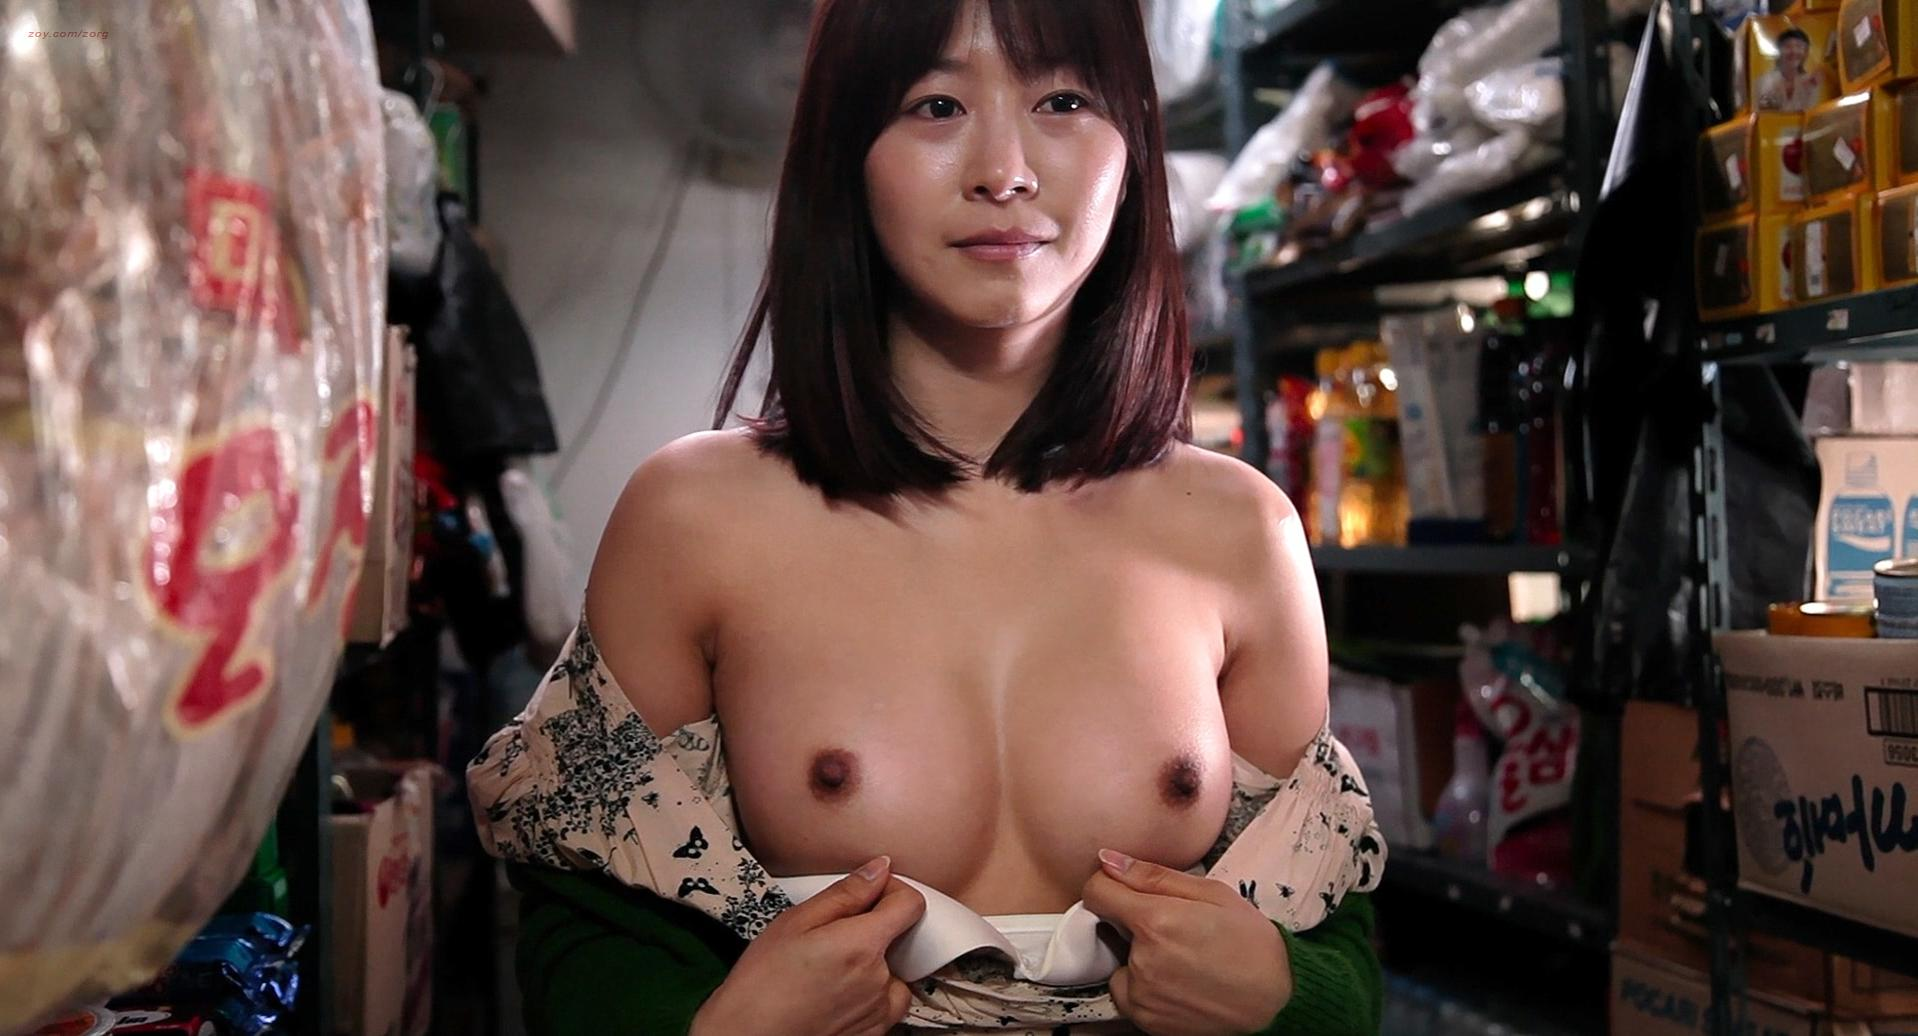 girl-sex-korean-movies-nude-stars-tips-for-females